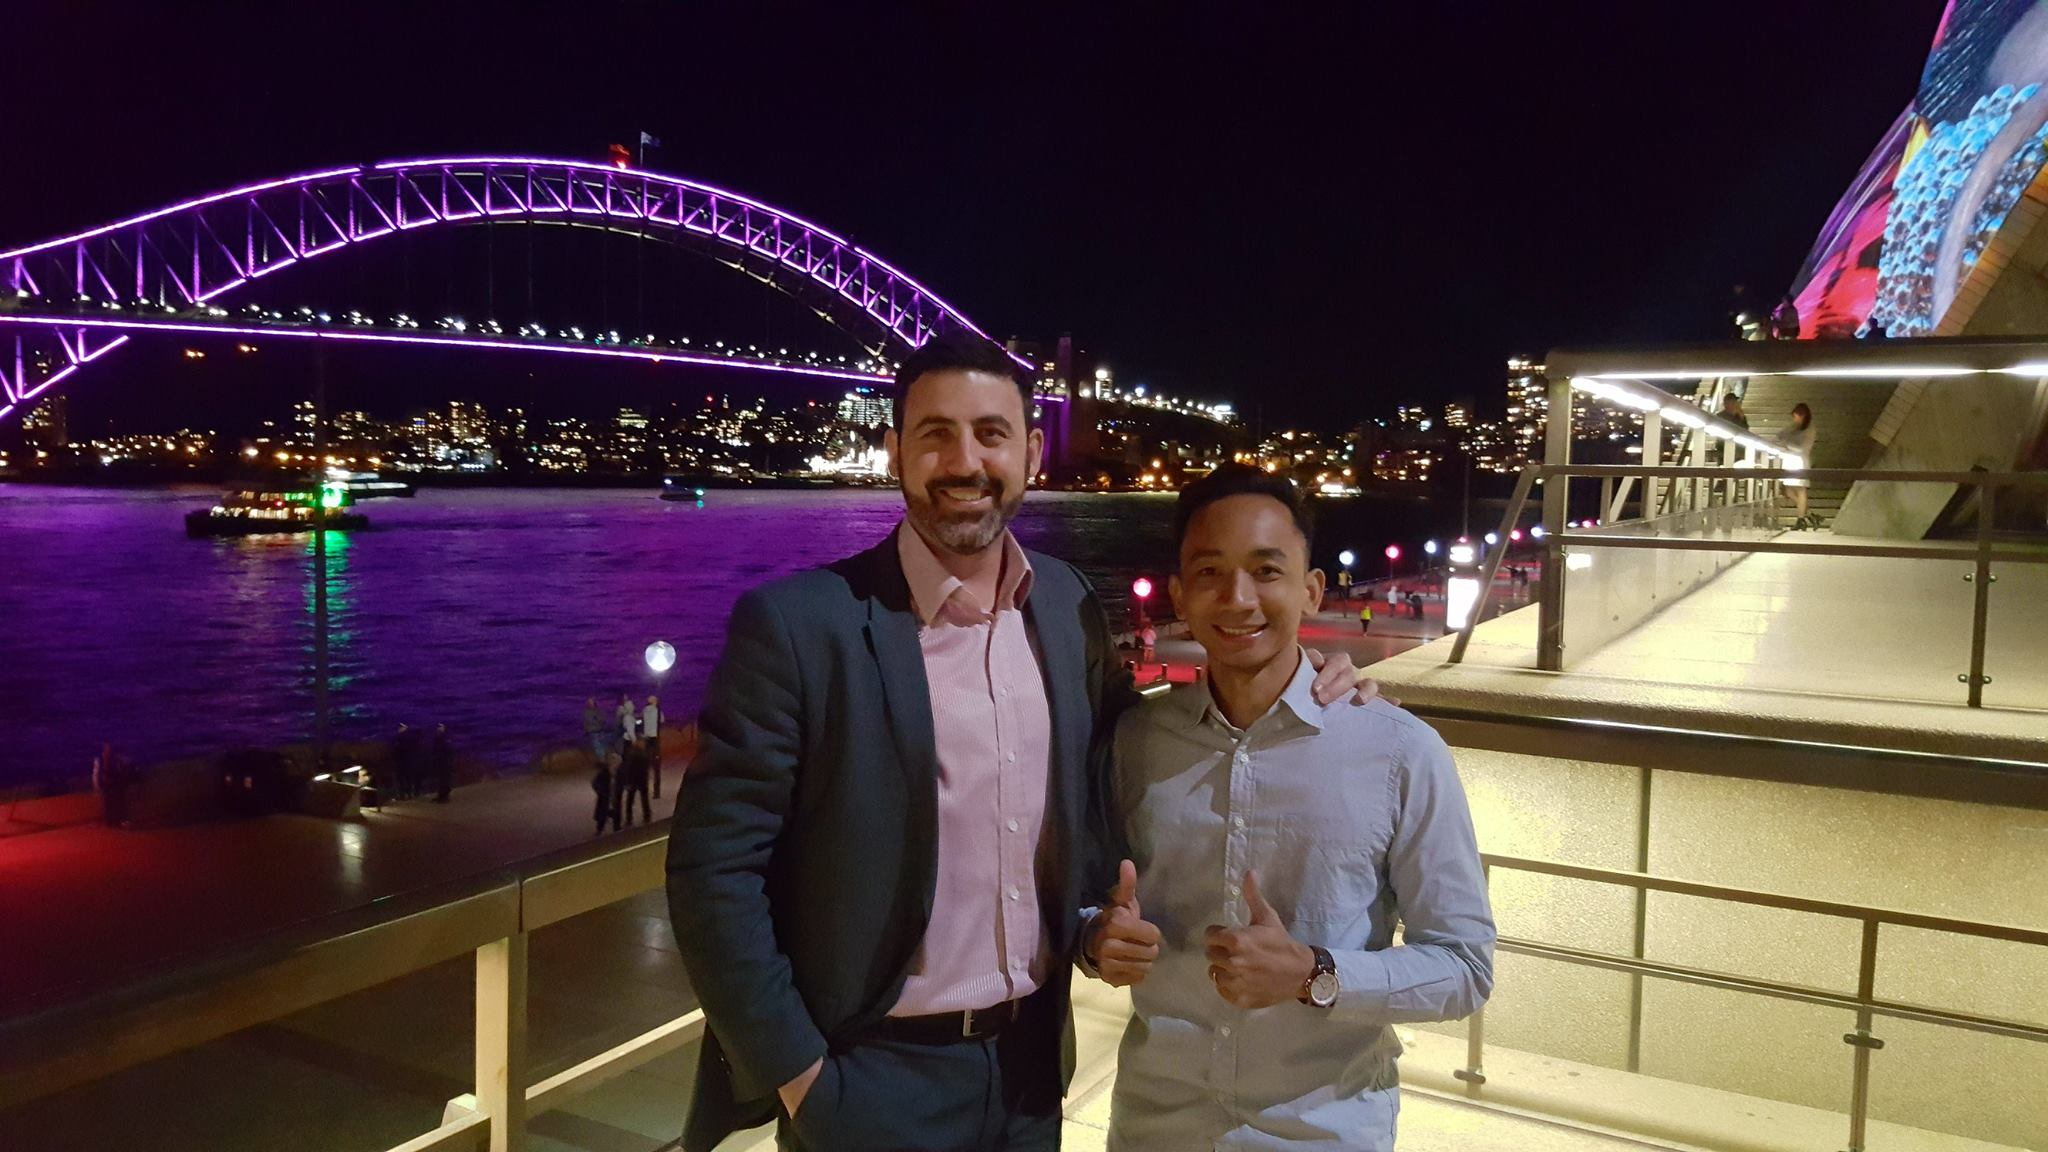 Michael Doig & Louie Rosales in Sydney